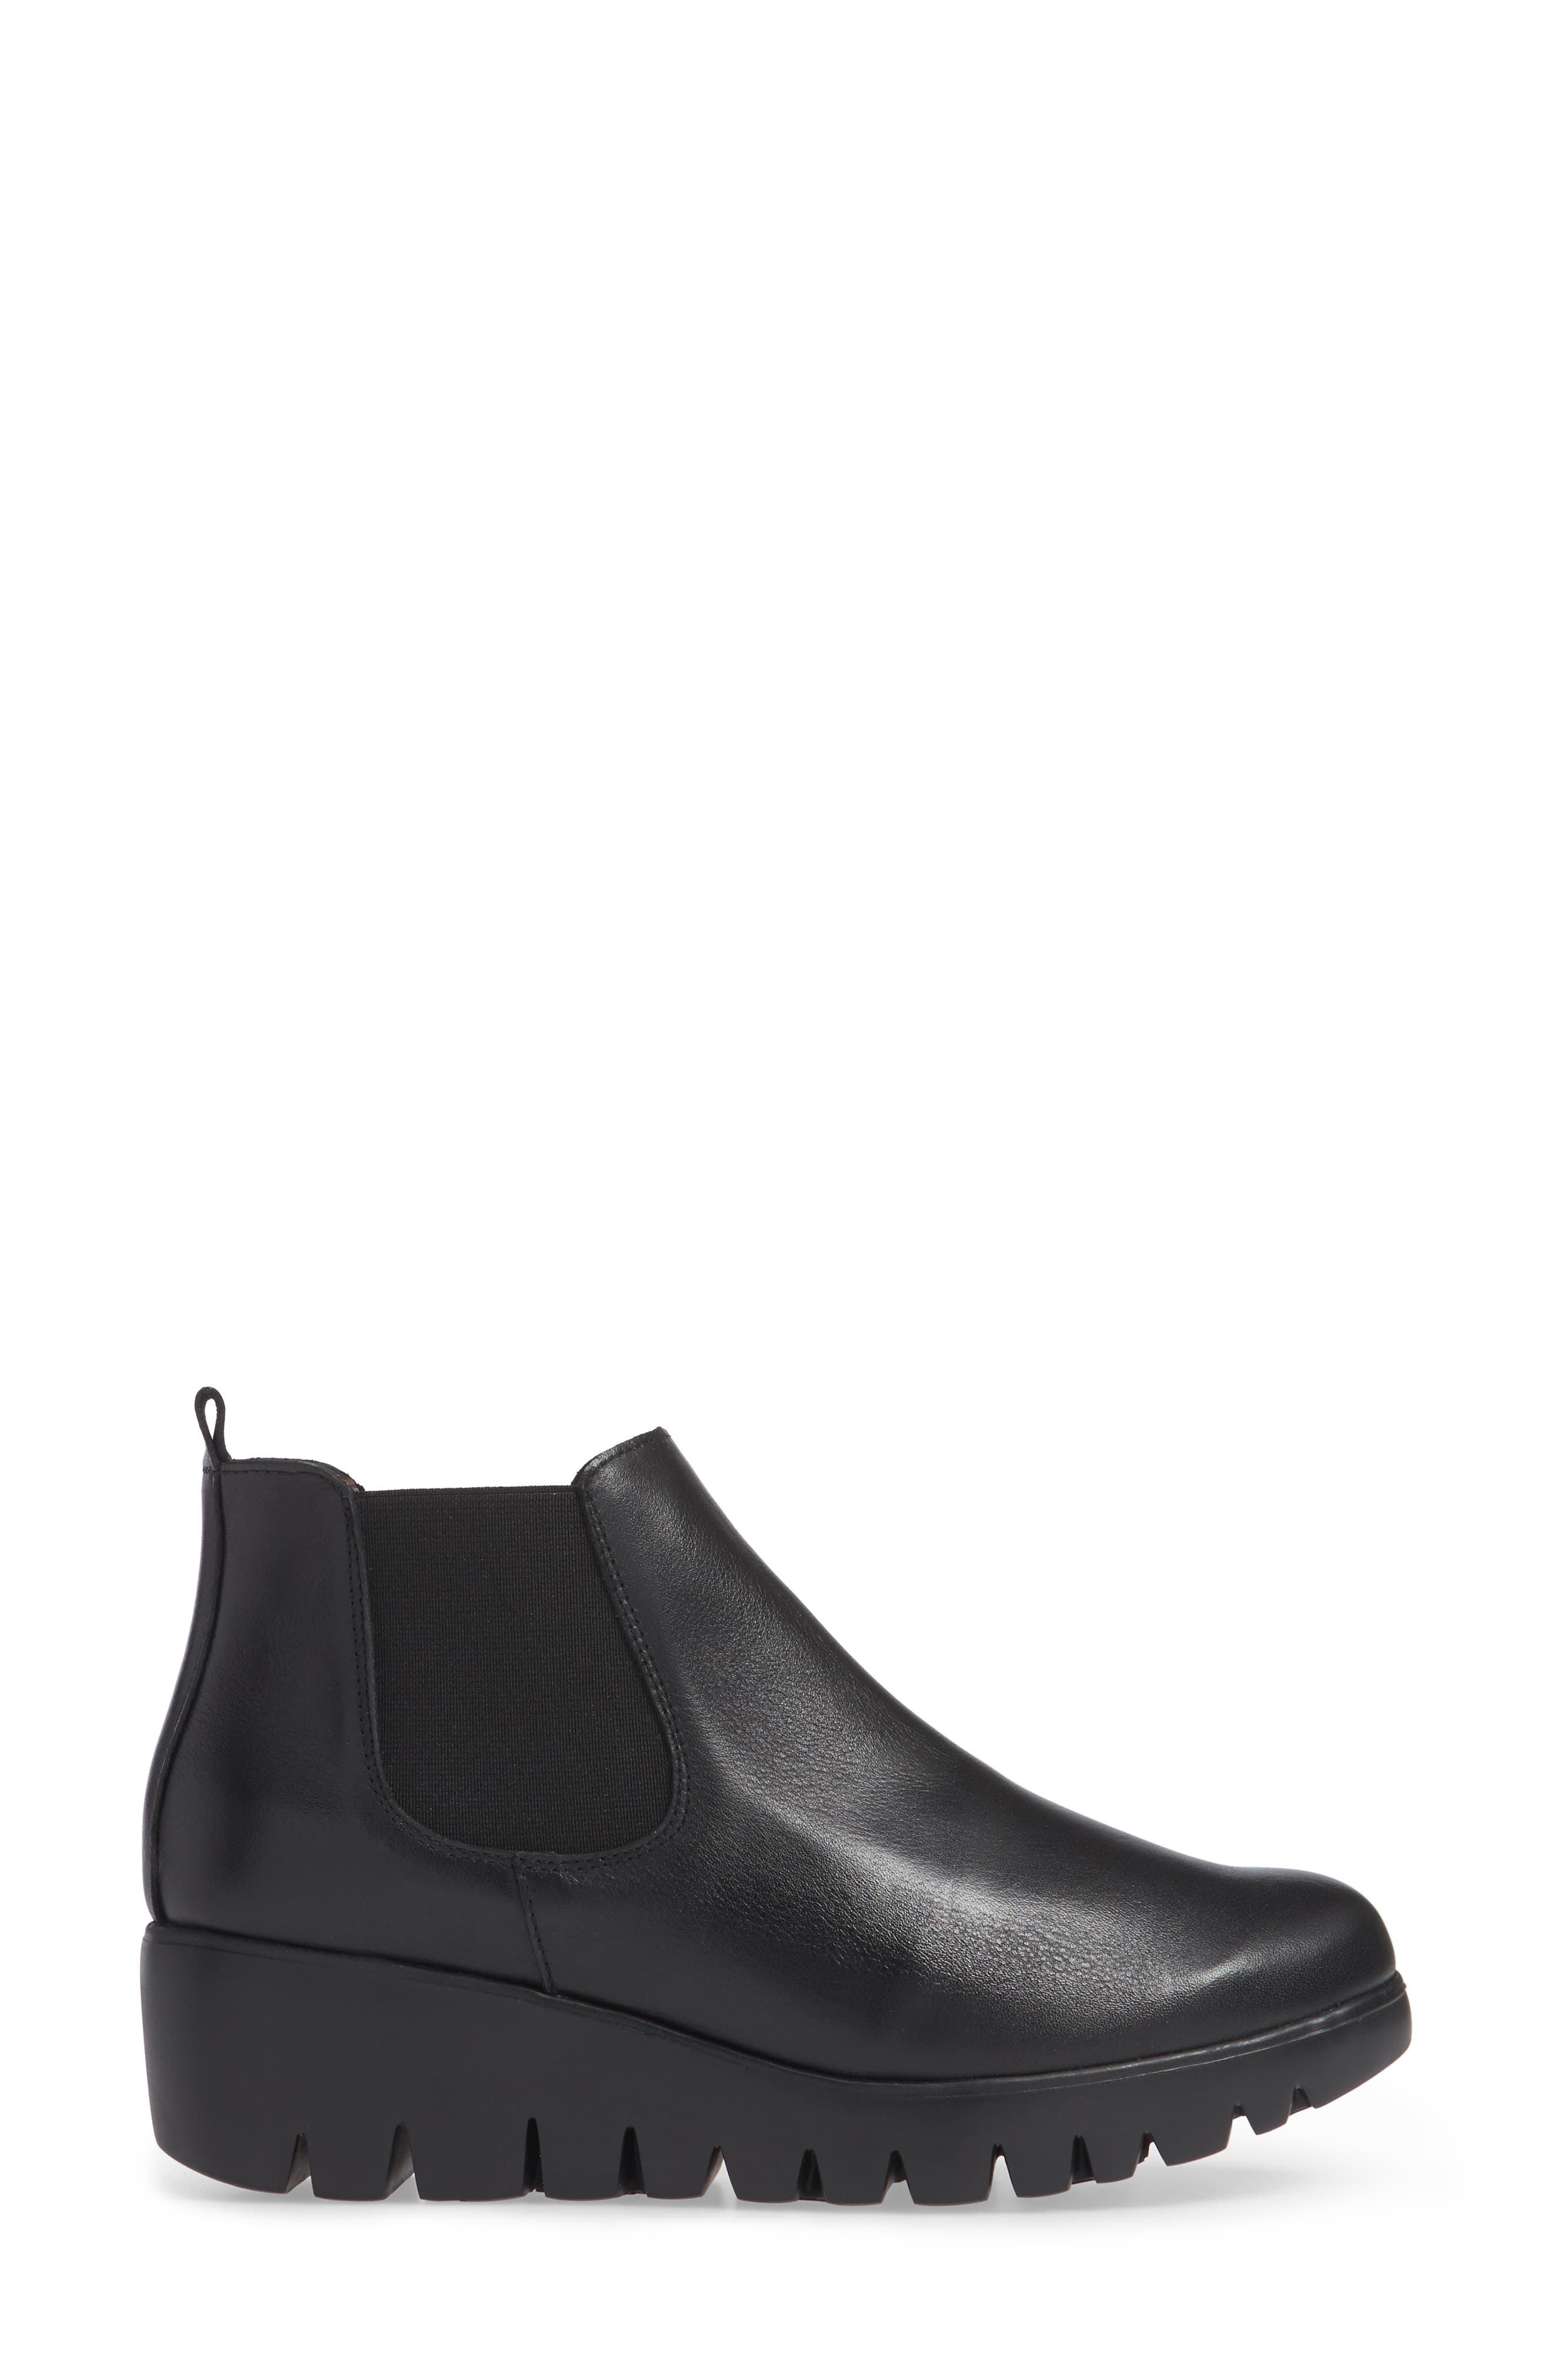 Slip-On Chelsea Boot,                             Alternate thumbnail 3, color,                             BLACK SMOOTH LEATHER